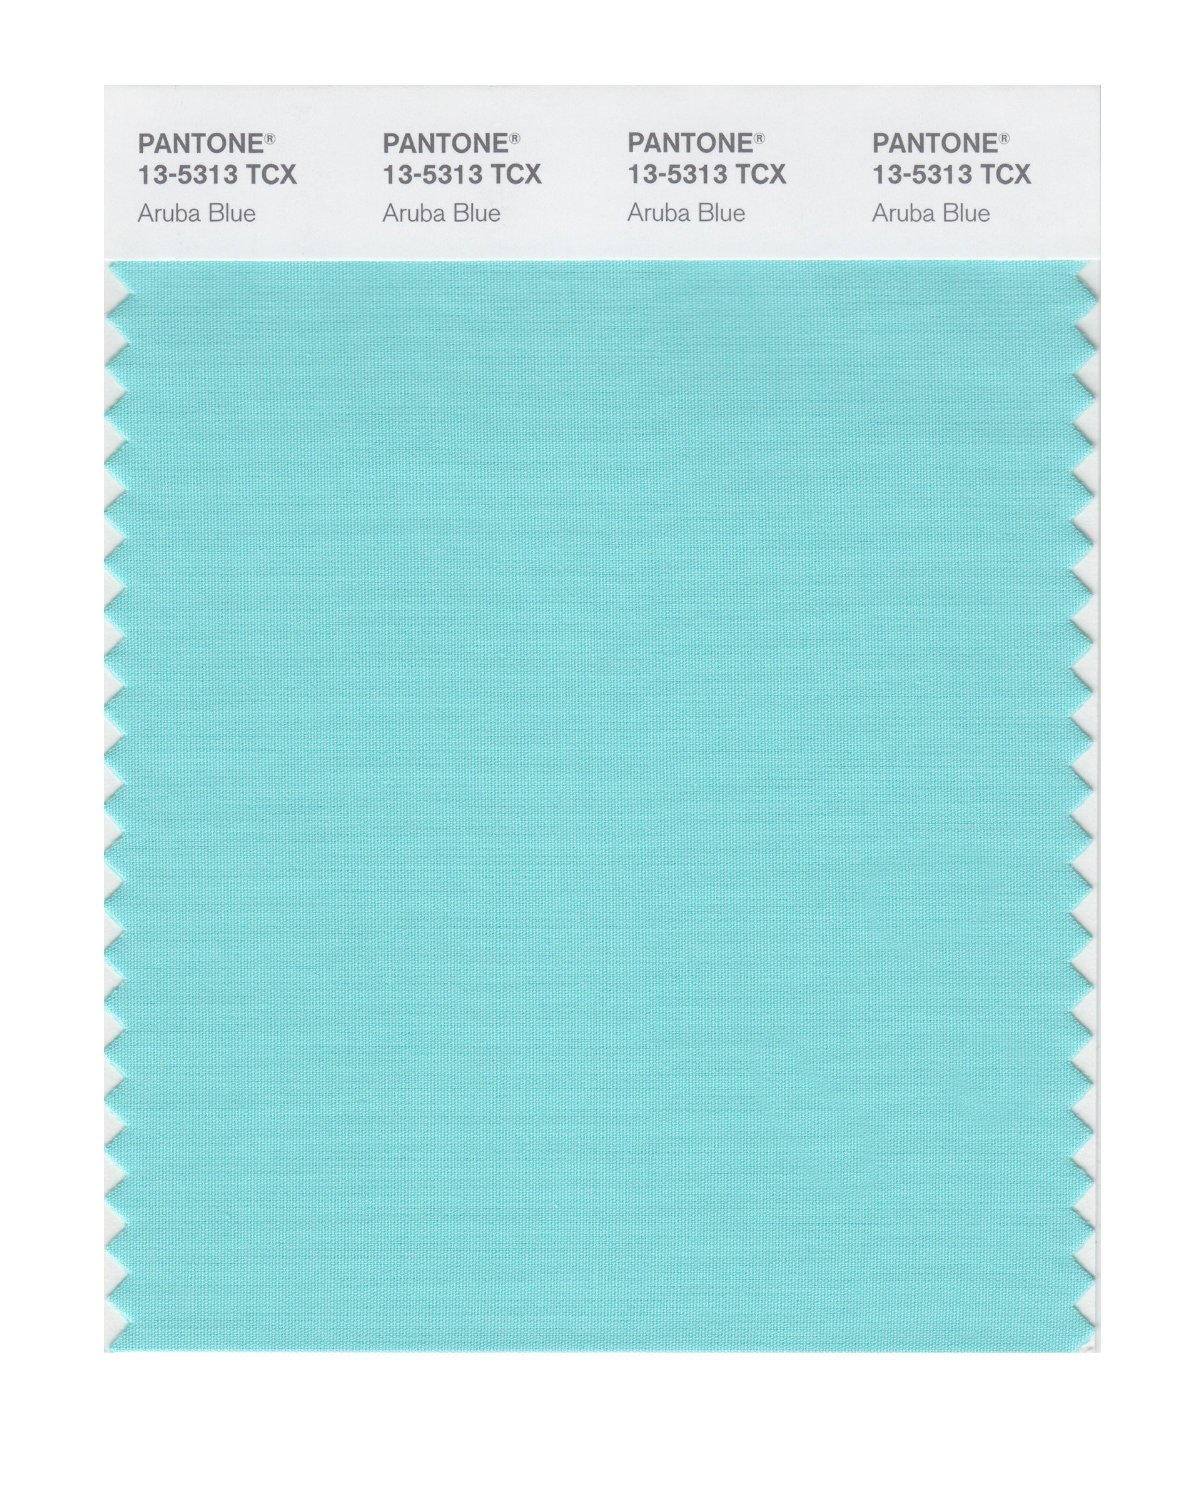 Pantone Smart Swatch 13-5313 Aruba Blue